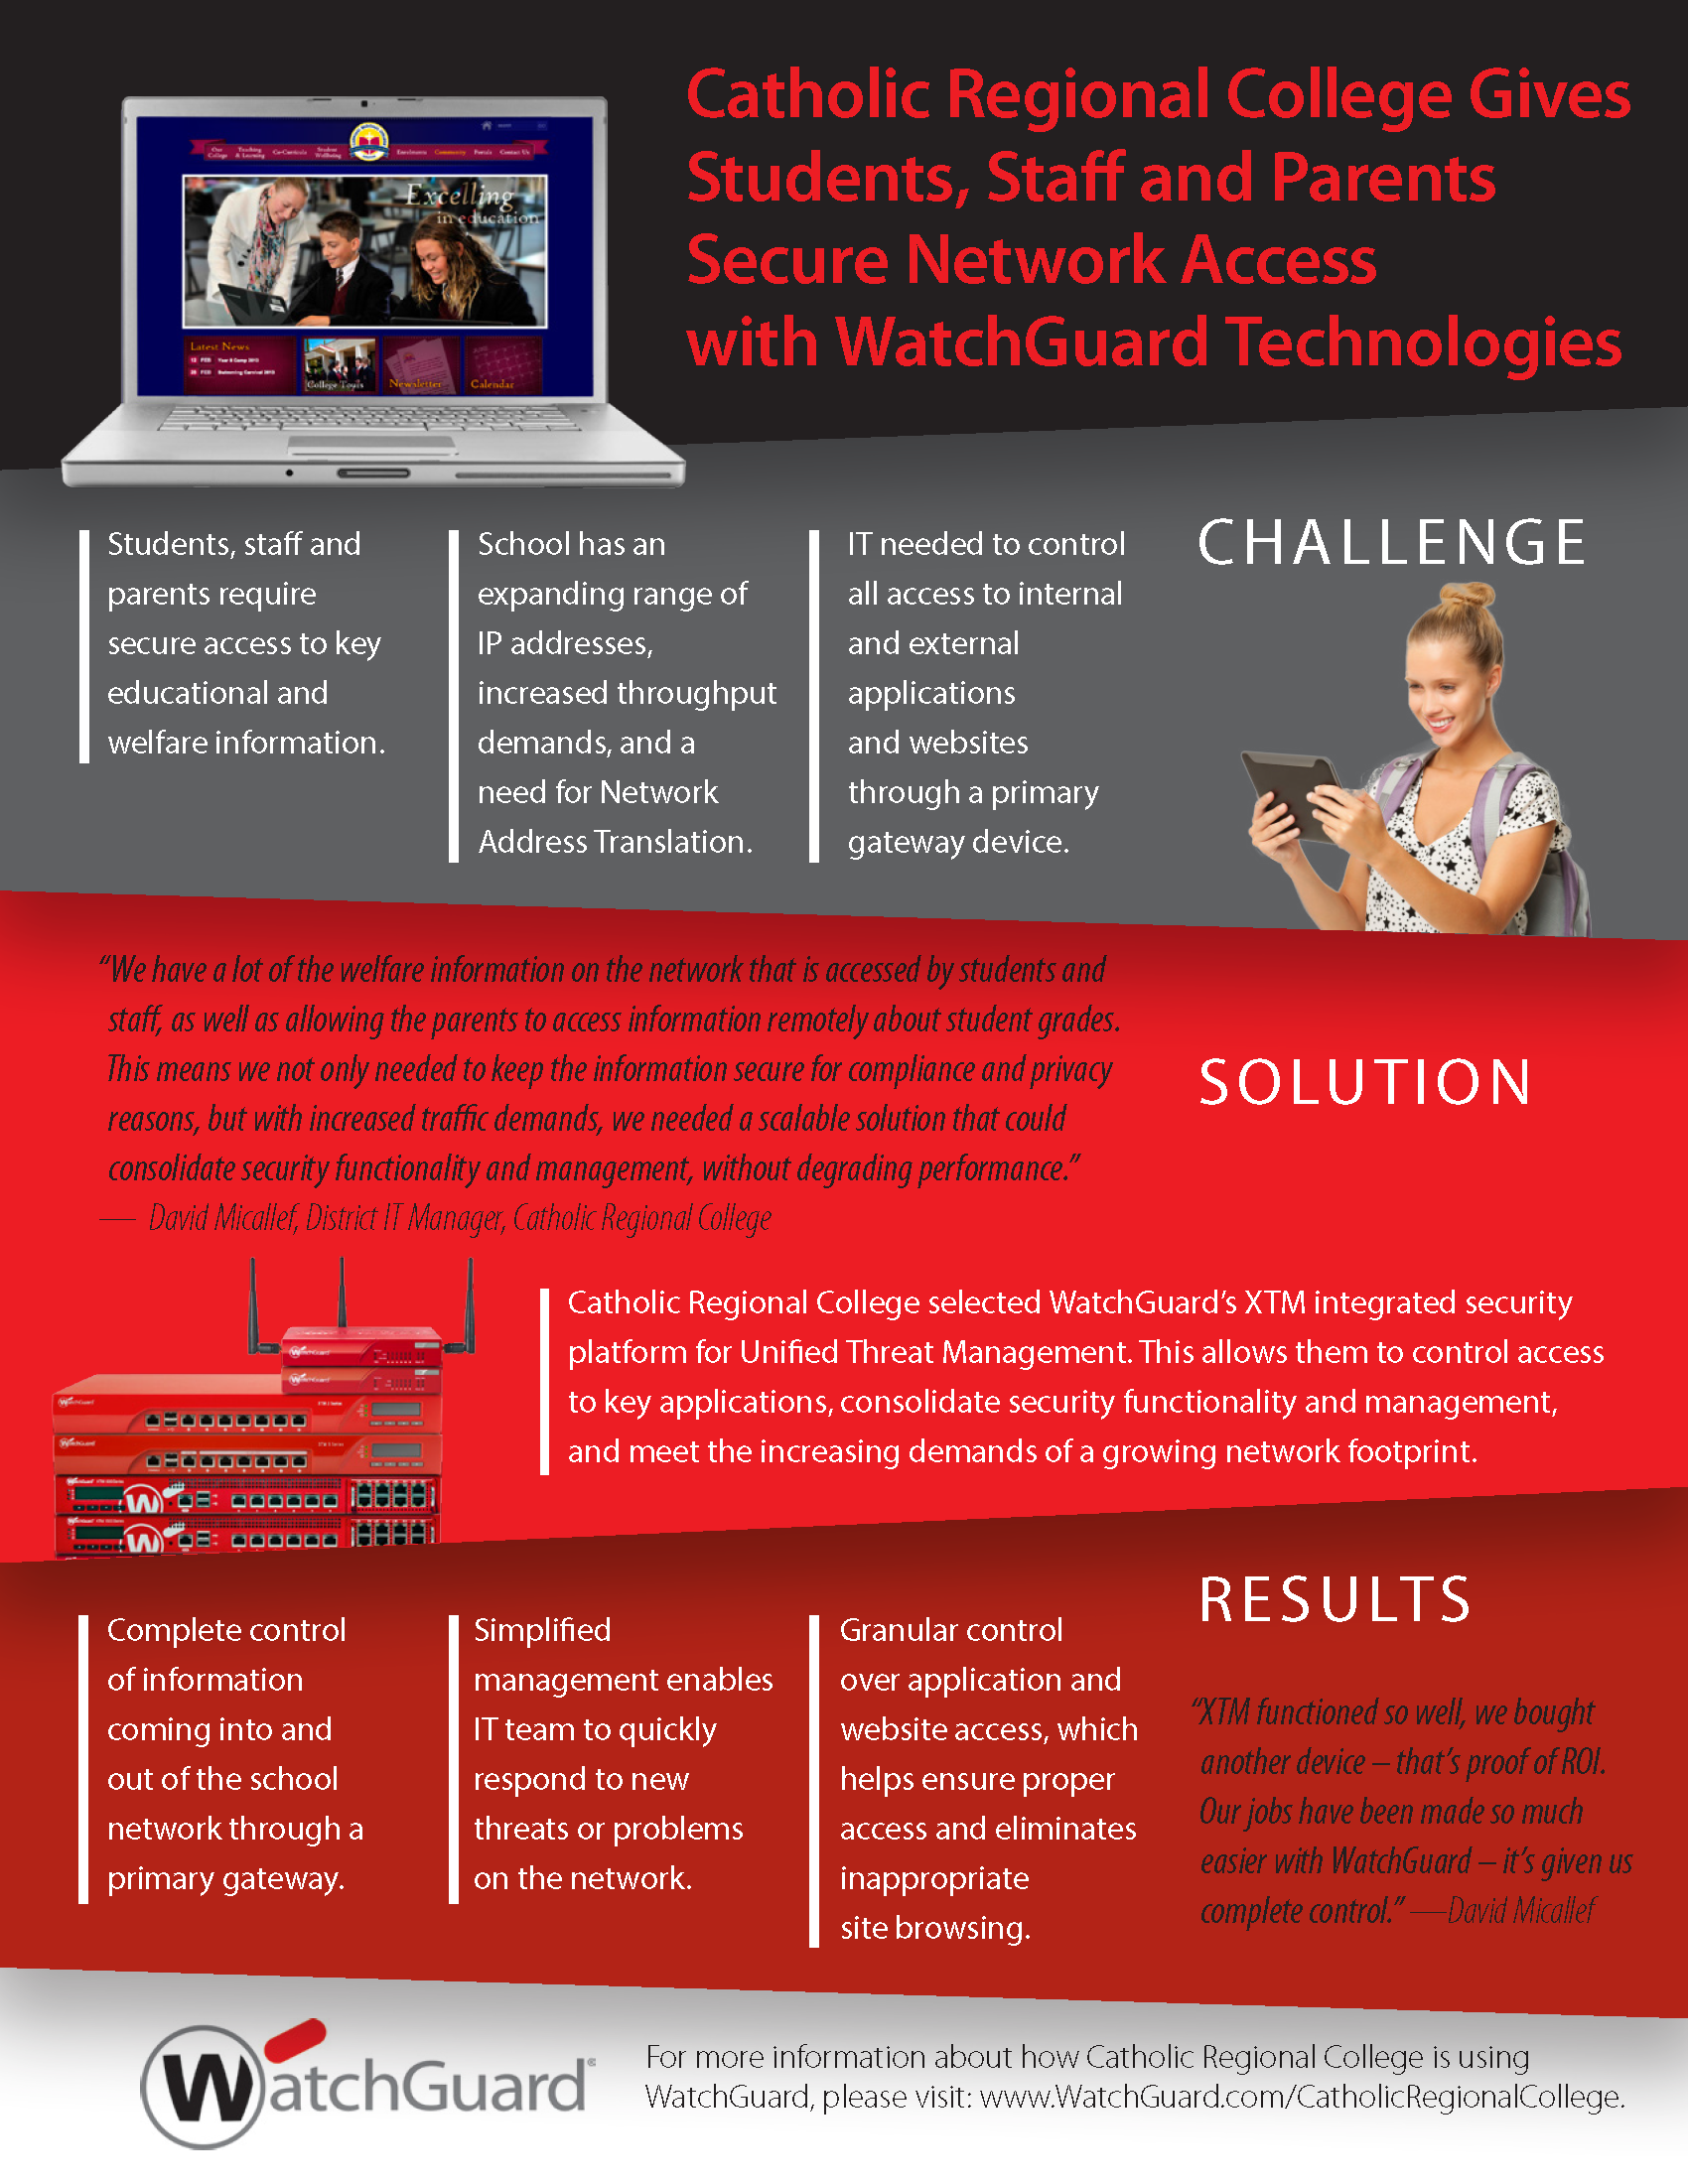 catholic-college-casestudy-for-watchguard-technologies.png